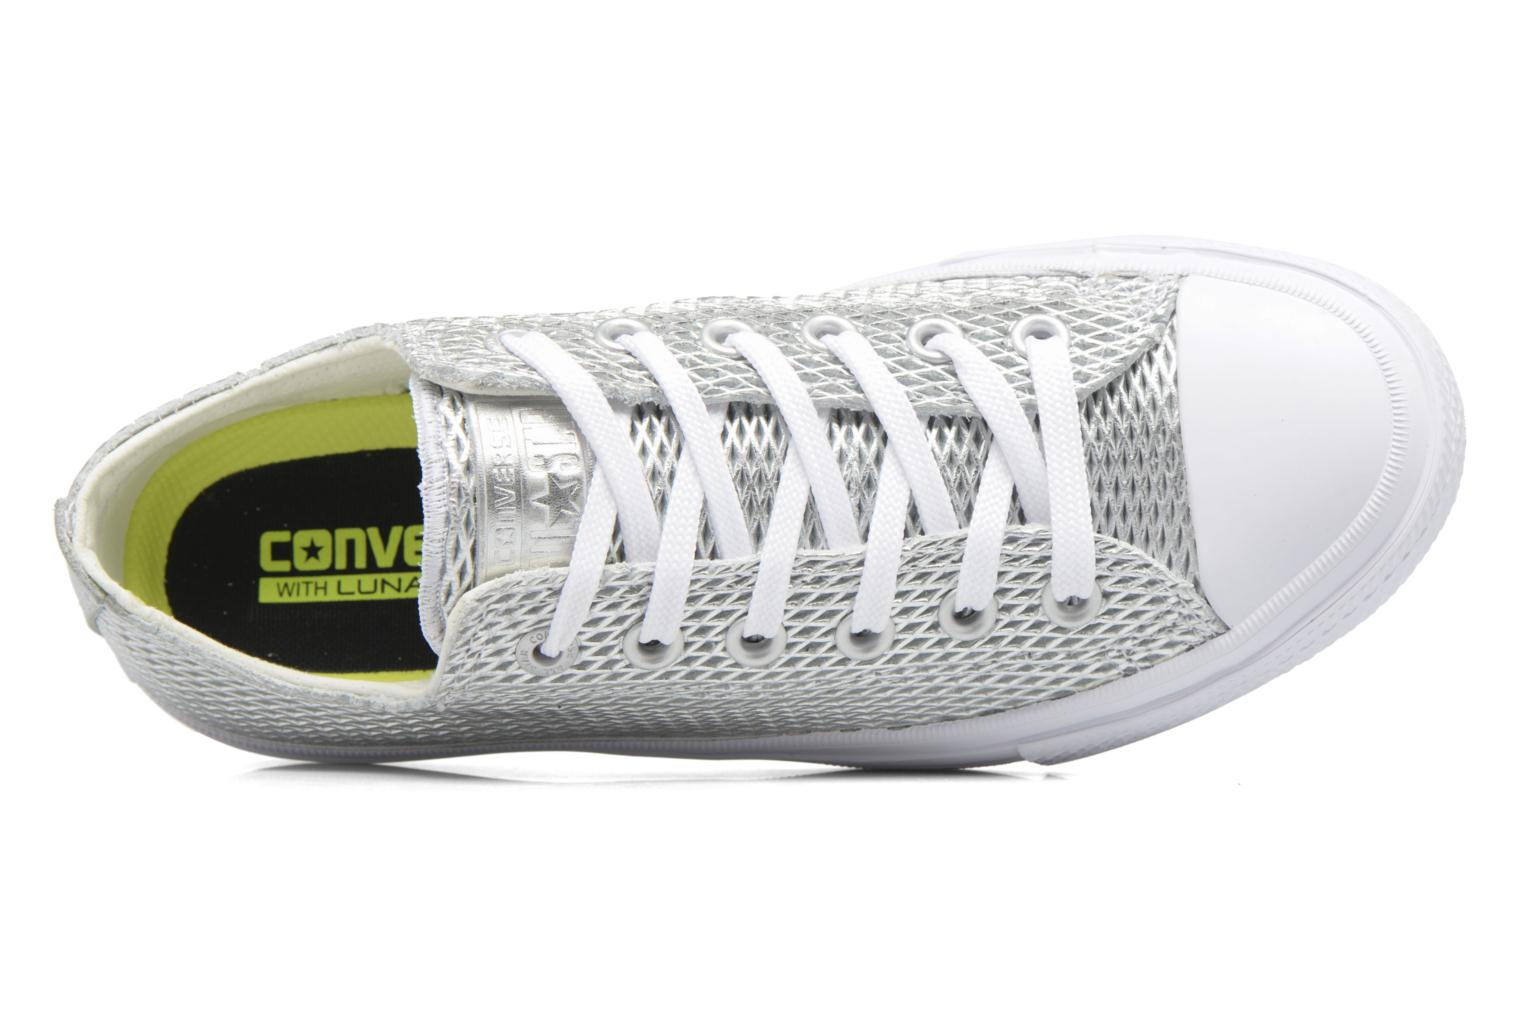 Chuck Taylor All Star II Ox Perf Metallic Leather Silver/White/White